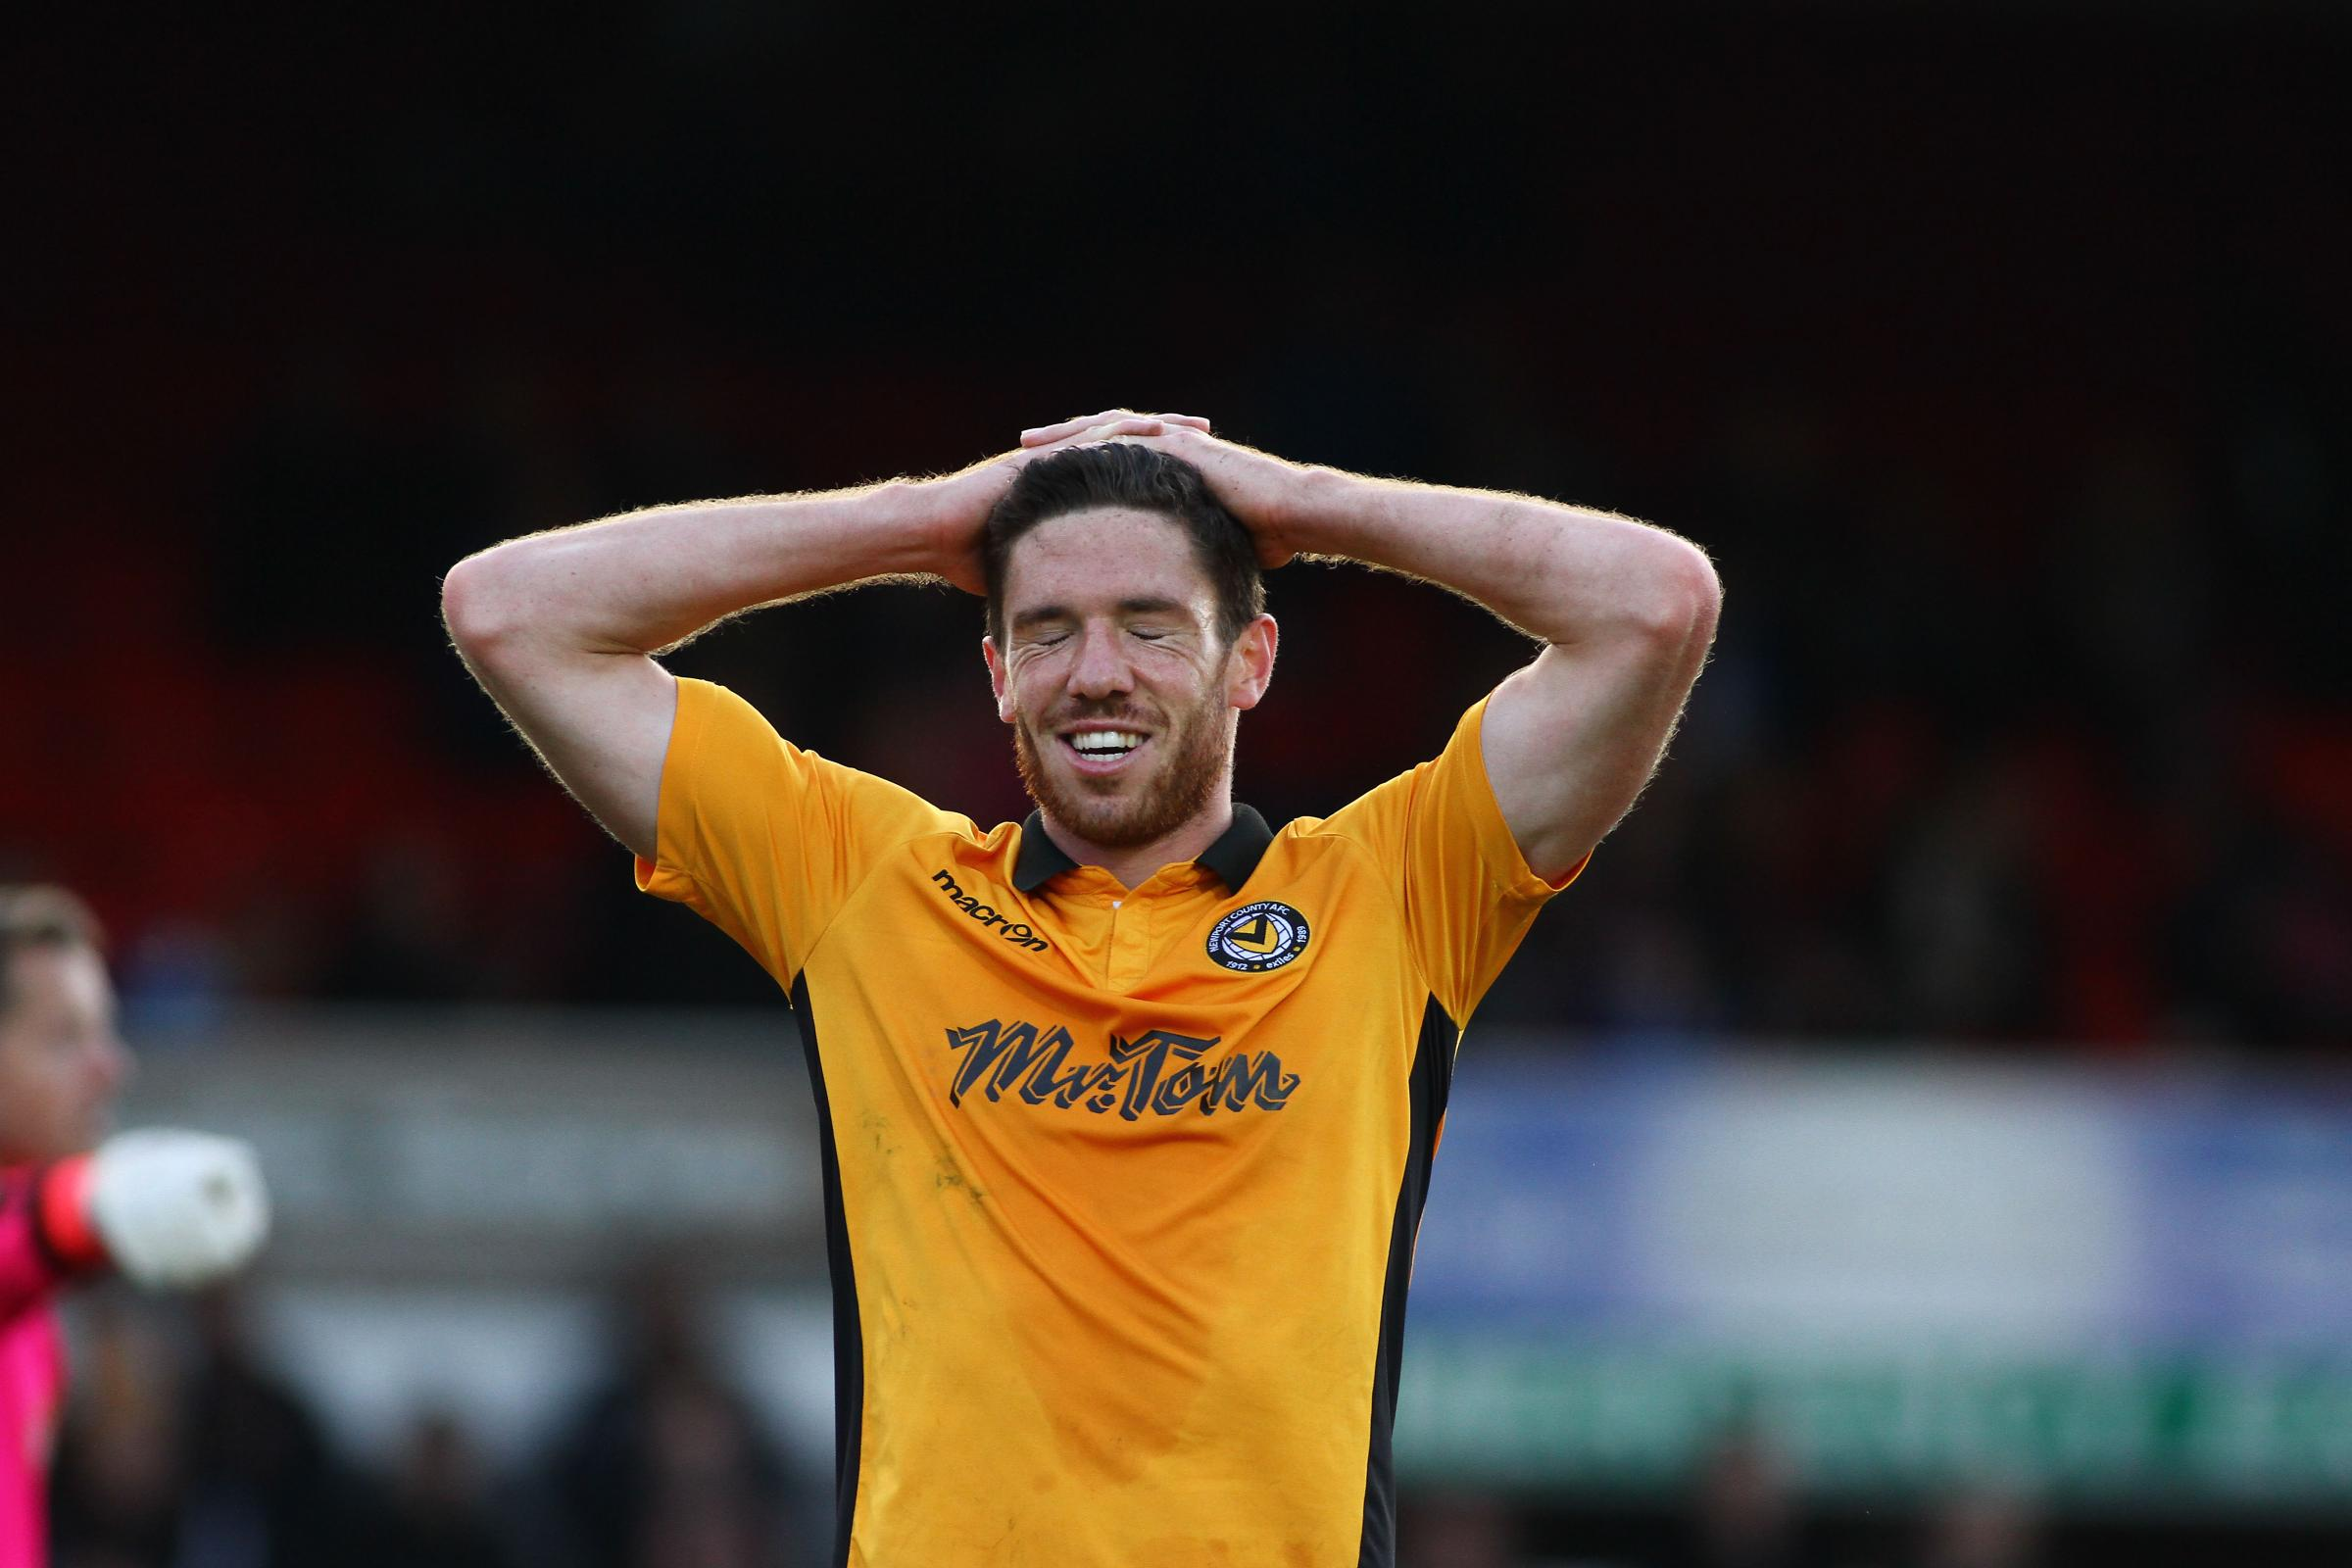 DIFFICULT: Newport County midfielder Ben Tozer suffered anxiety attacks after being axed by Graham Westley last season. Pictures: Huw Evans Agency